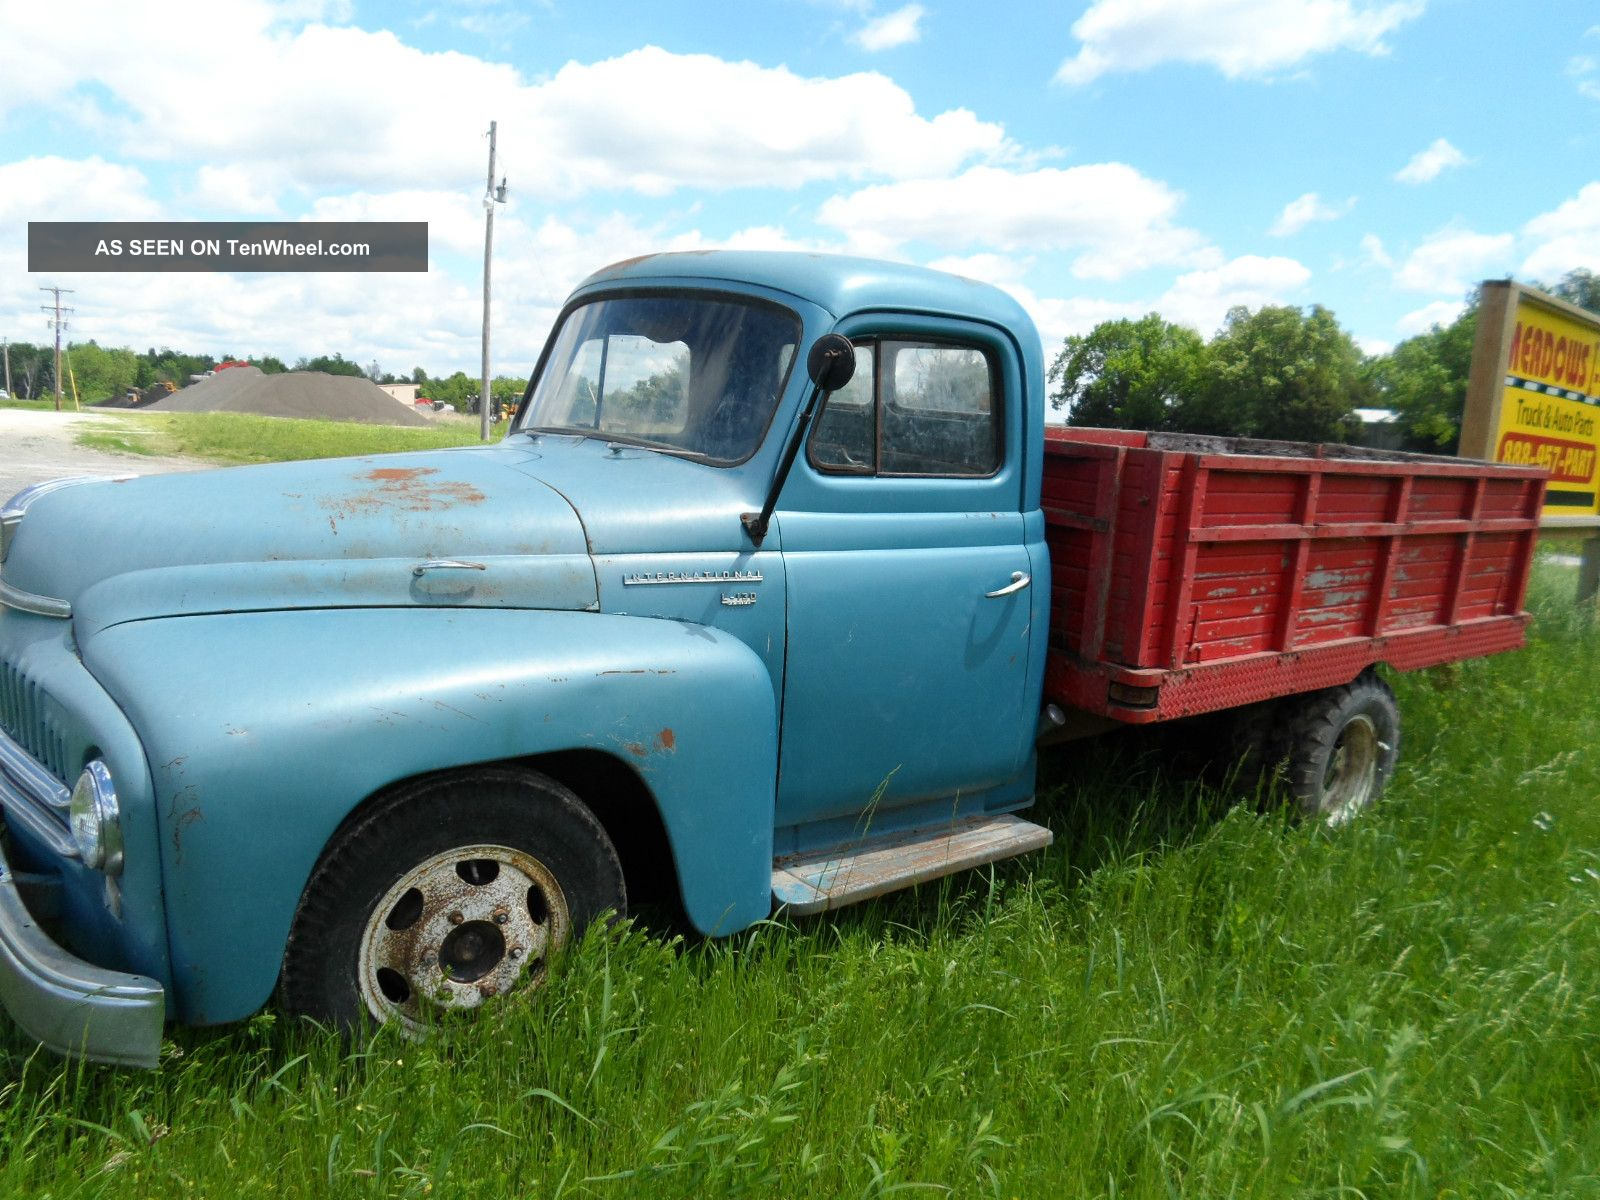 56704 Vacuum Solonoids Necessary furthermore 100170142 together with Straight Six engine also 1947 Chevy Coupe further Id 2005 Thwaites 6t Staight Skip Dumper. on staight 6 engine